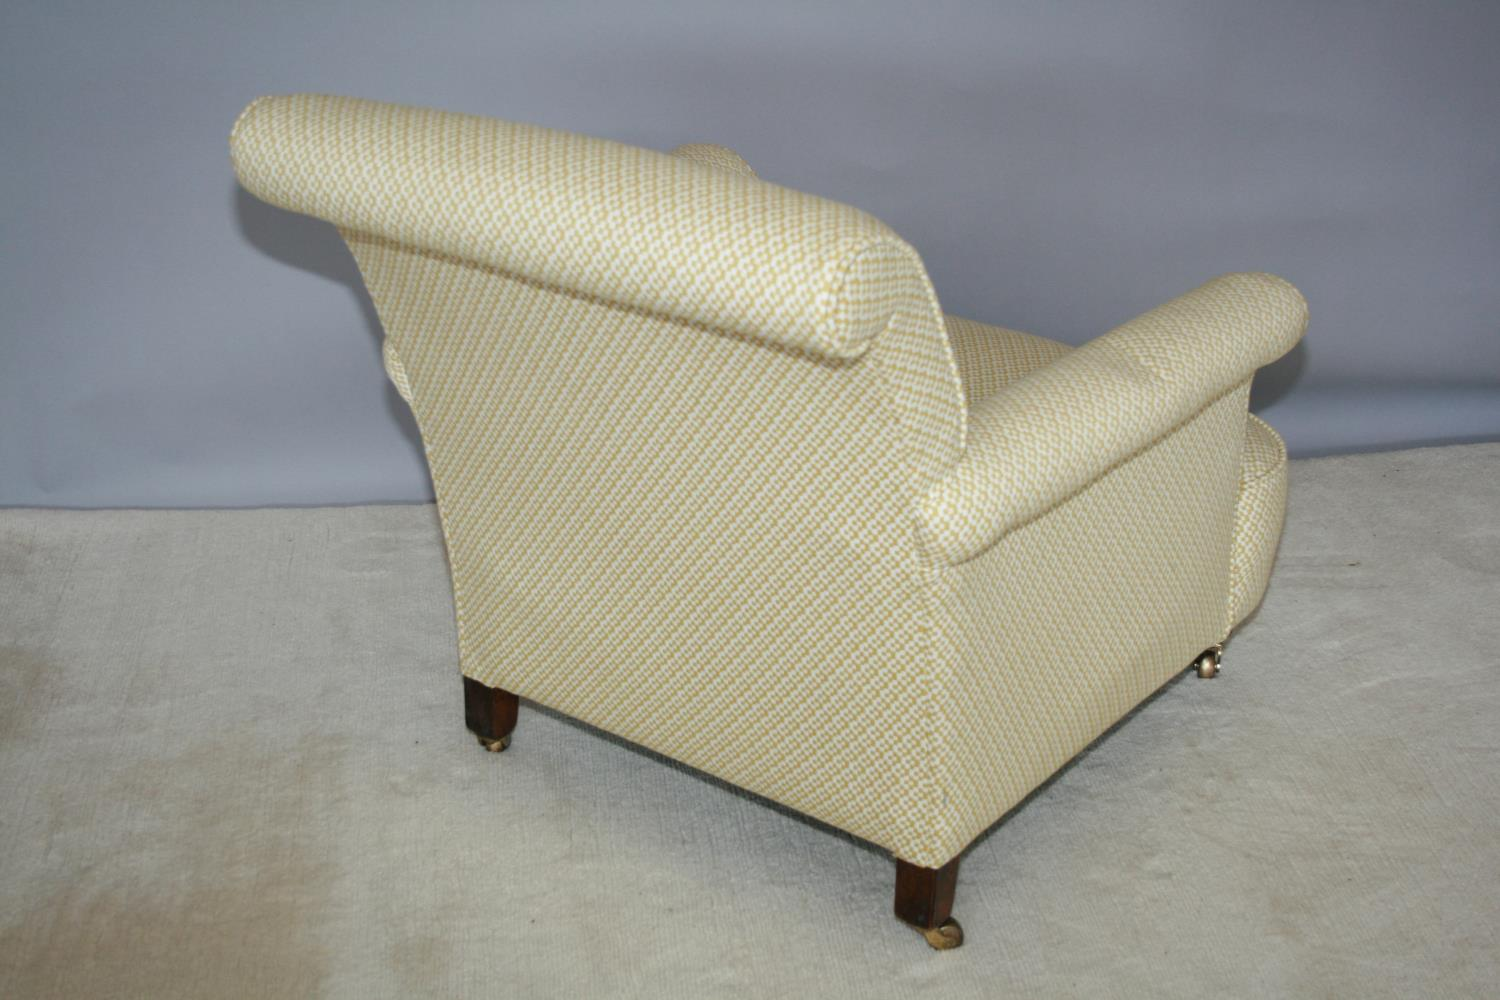 Edwardian upholstered occasional armchair on brass casters 75 W x 80 H x 90 D - Image 3 of 3